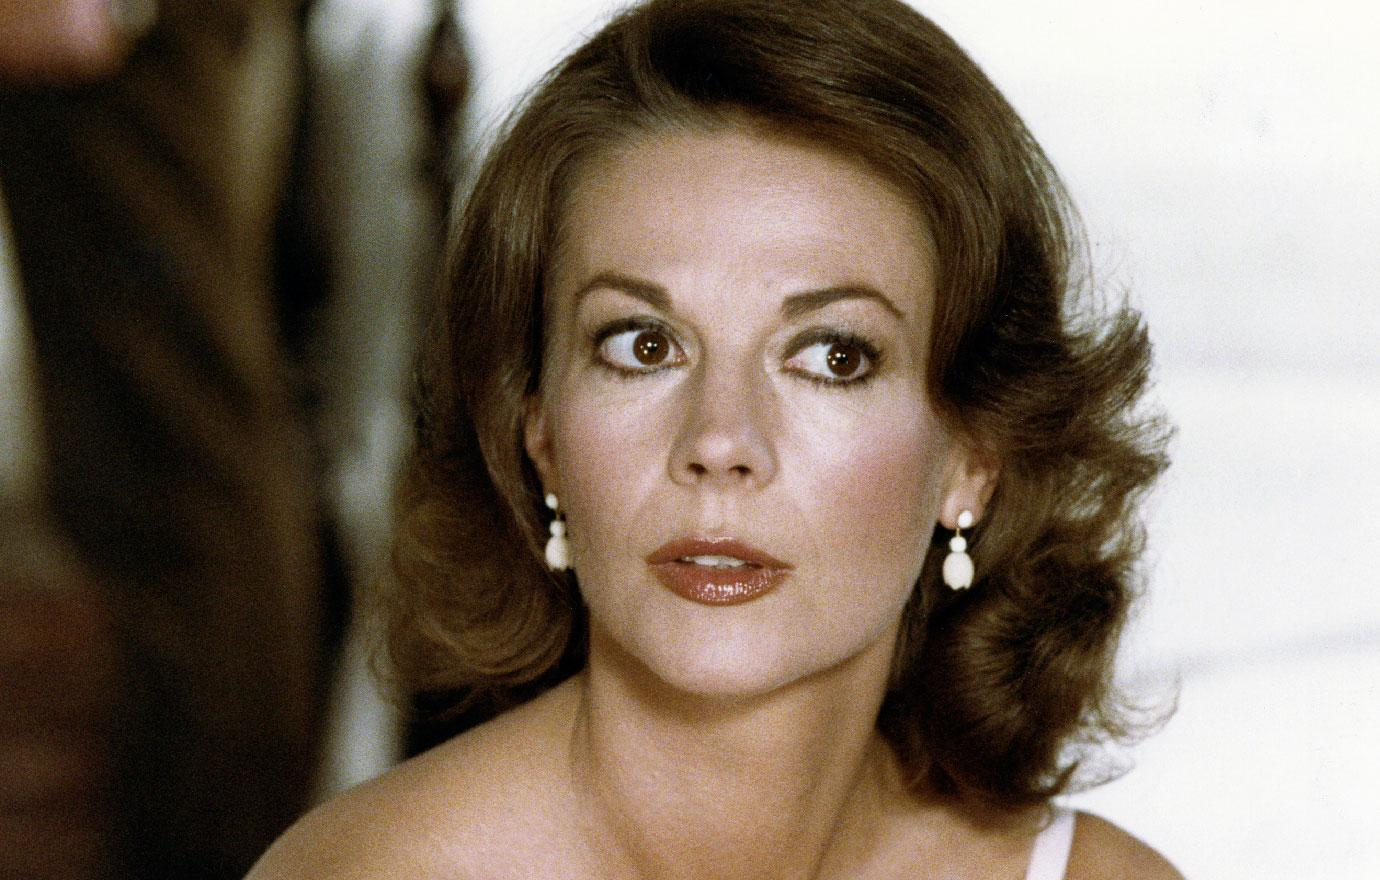 Homicide Cop Claims Natalie Wood Bruises Consistent With Being Assault Victim